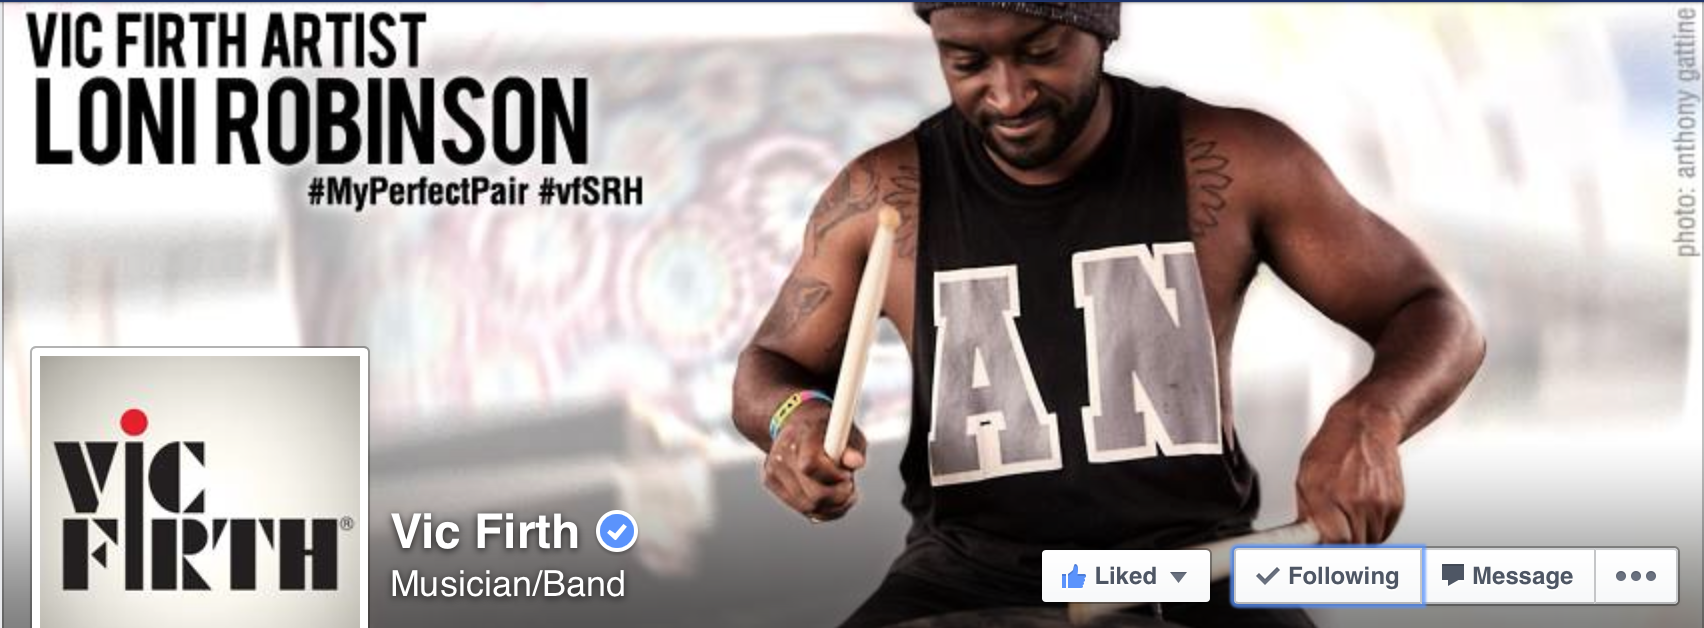 Vic Firth Facebook Banner - Loni Robinson of Letlive.